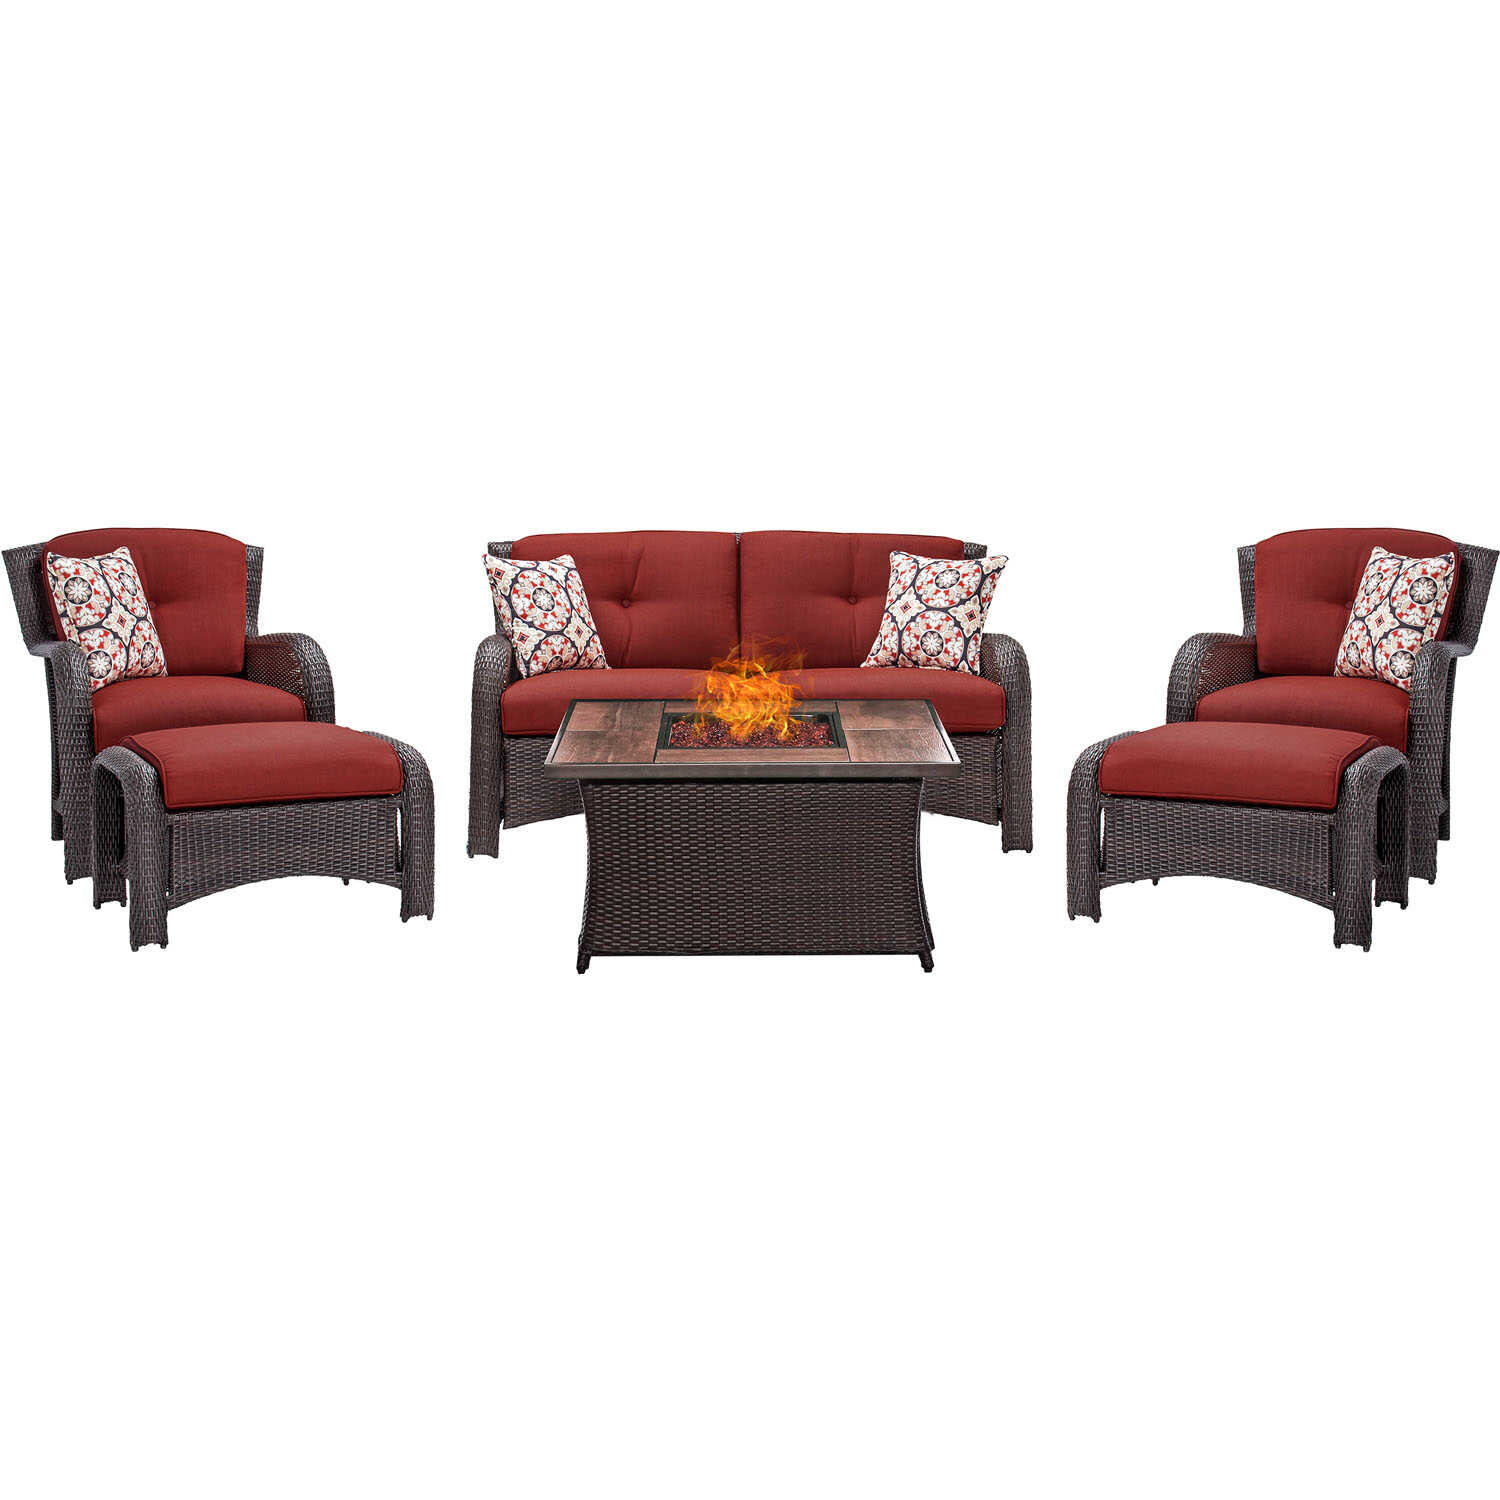 Hanover  Strathmere  6 pc. Espresso  Steel  Firepit Seating Set  Red